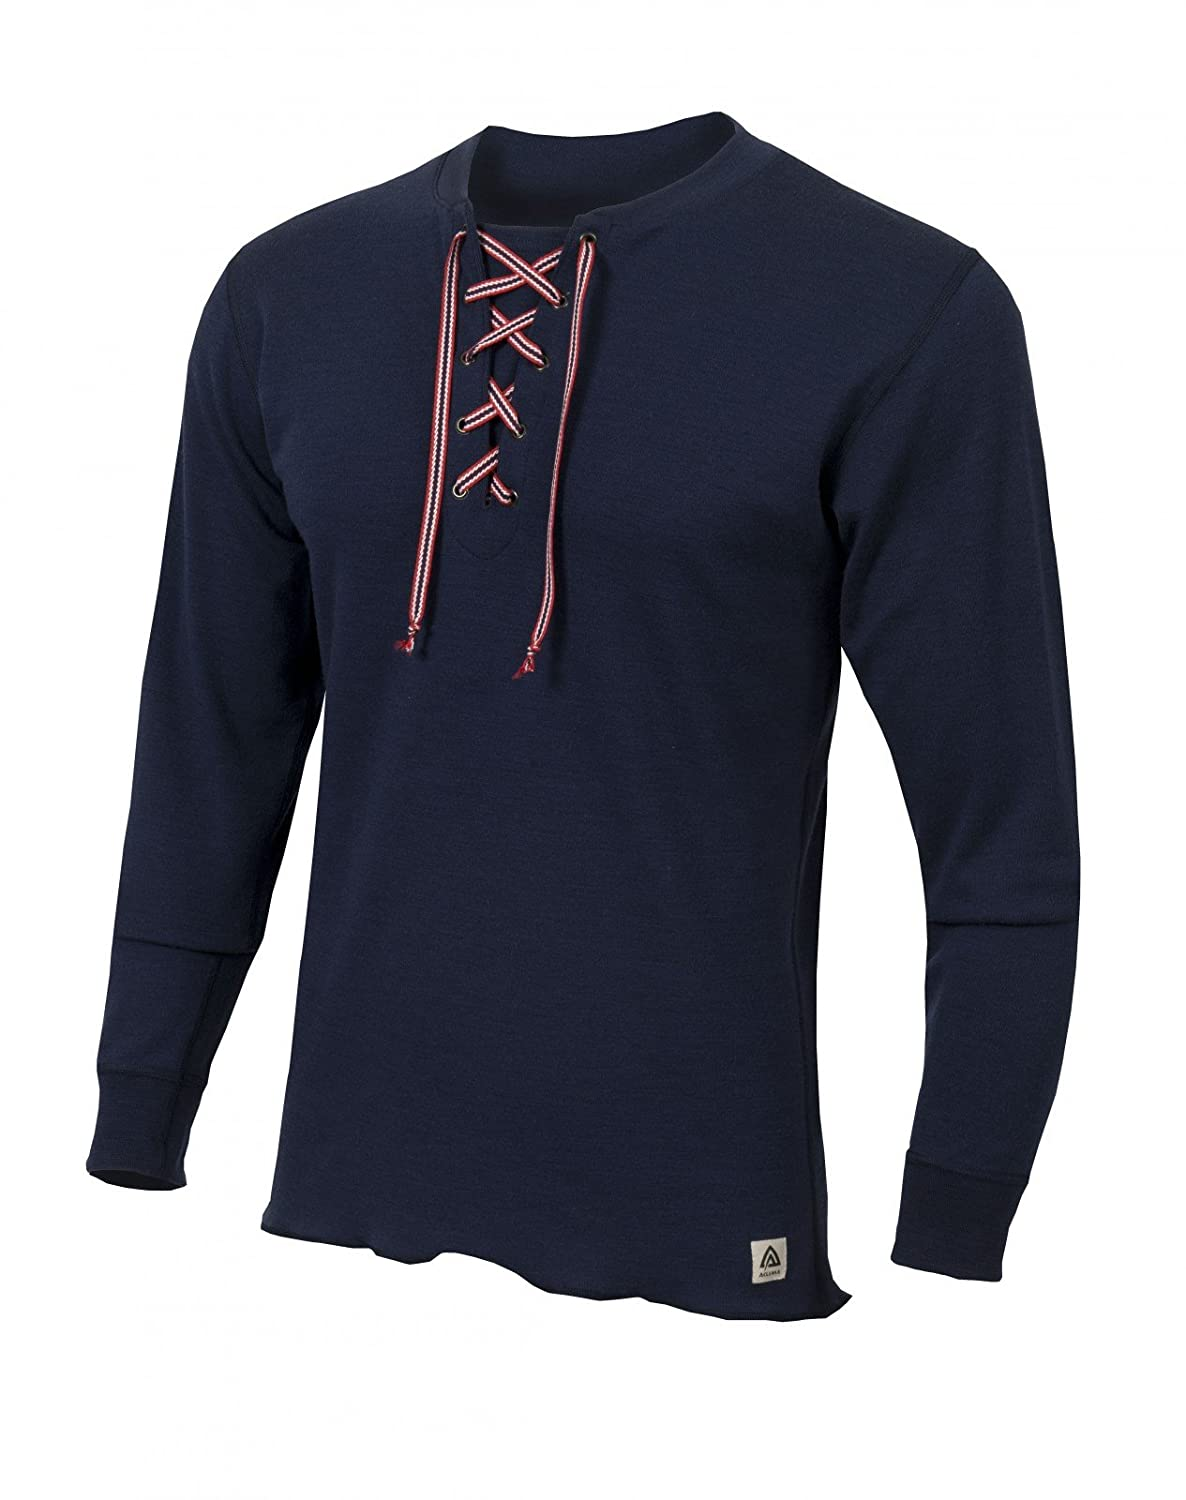 Aclima WarmWool Men's Shirt with Cord